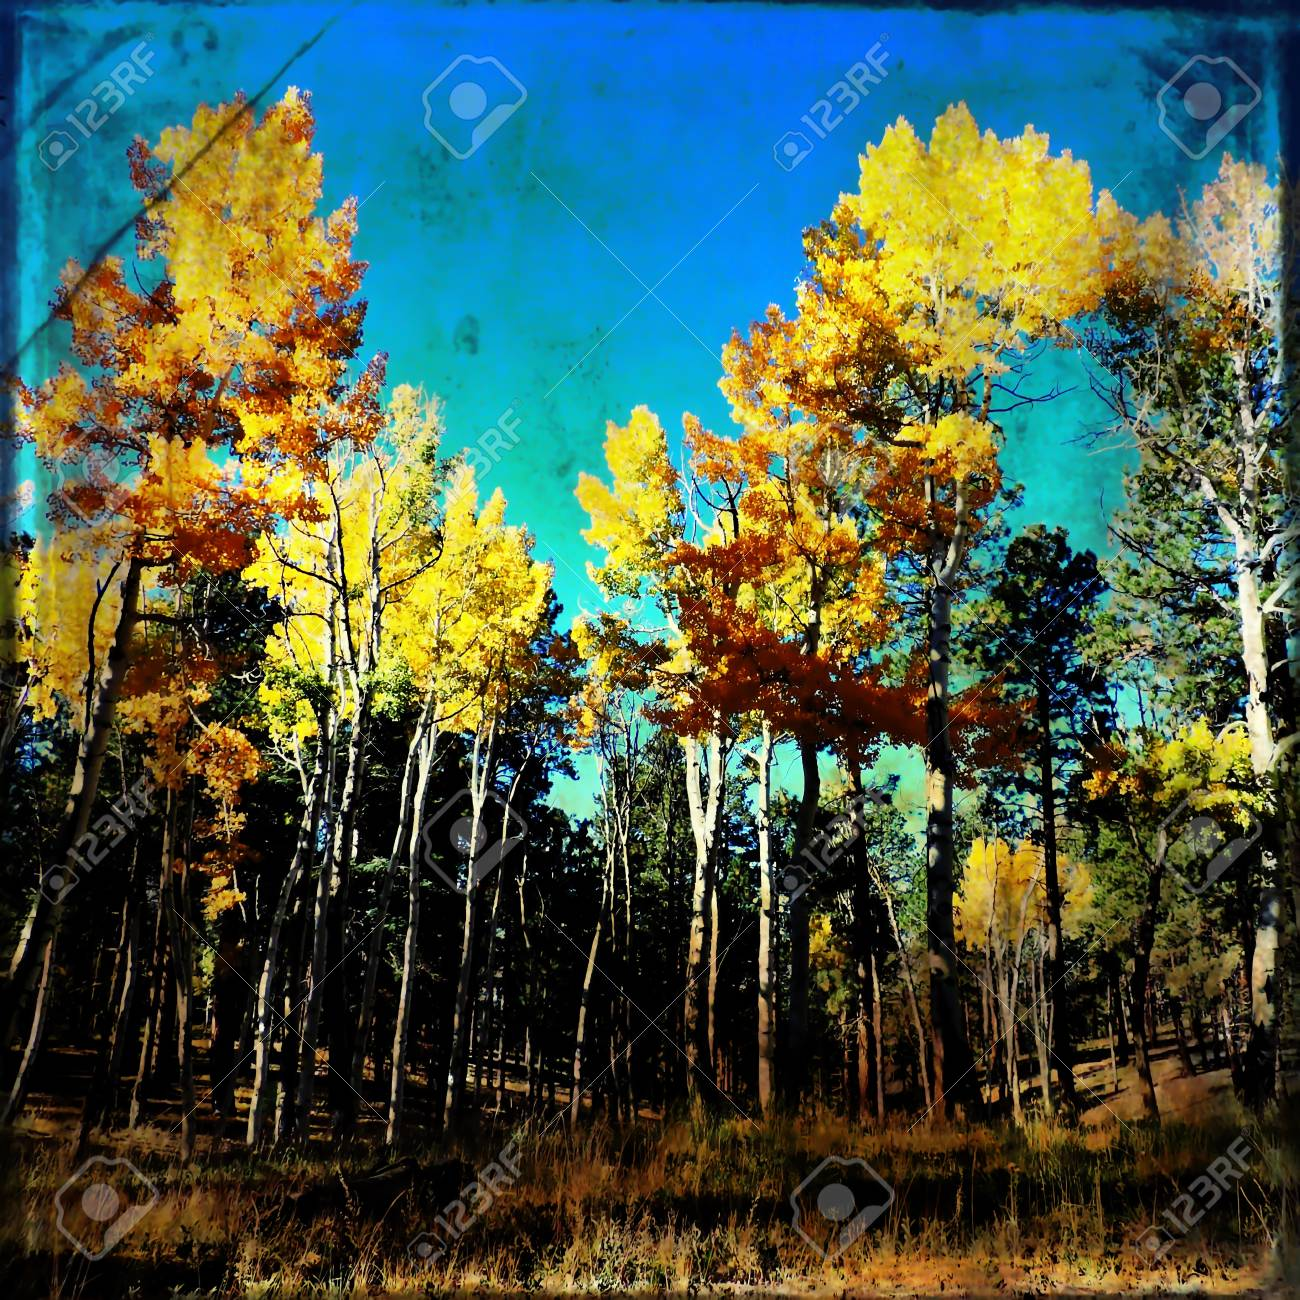 Aspen Forest Scene with Texture Stock Photo - 56978309